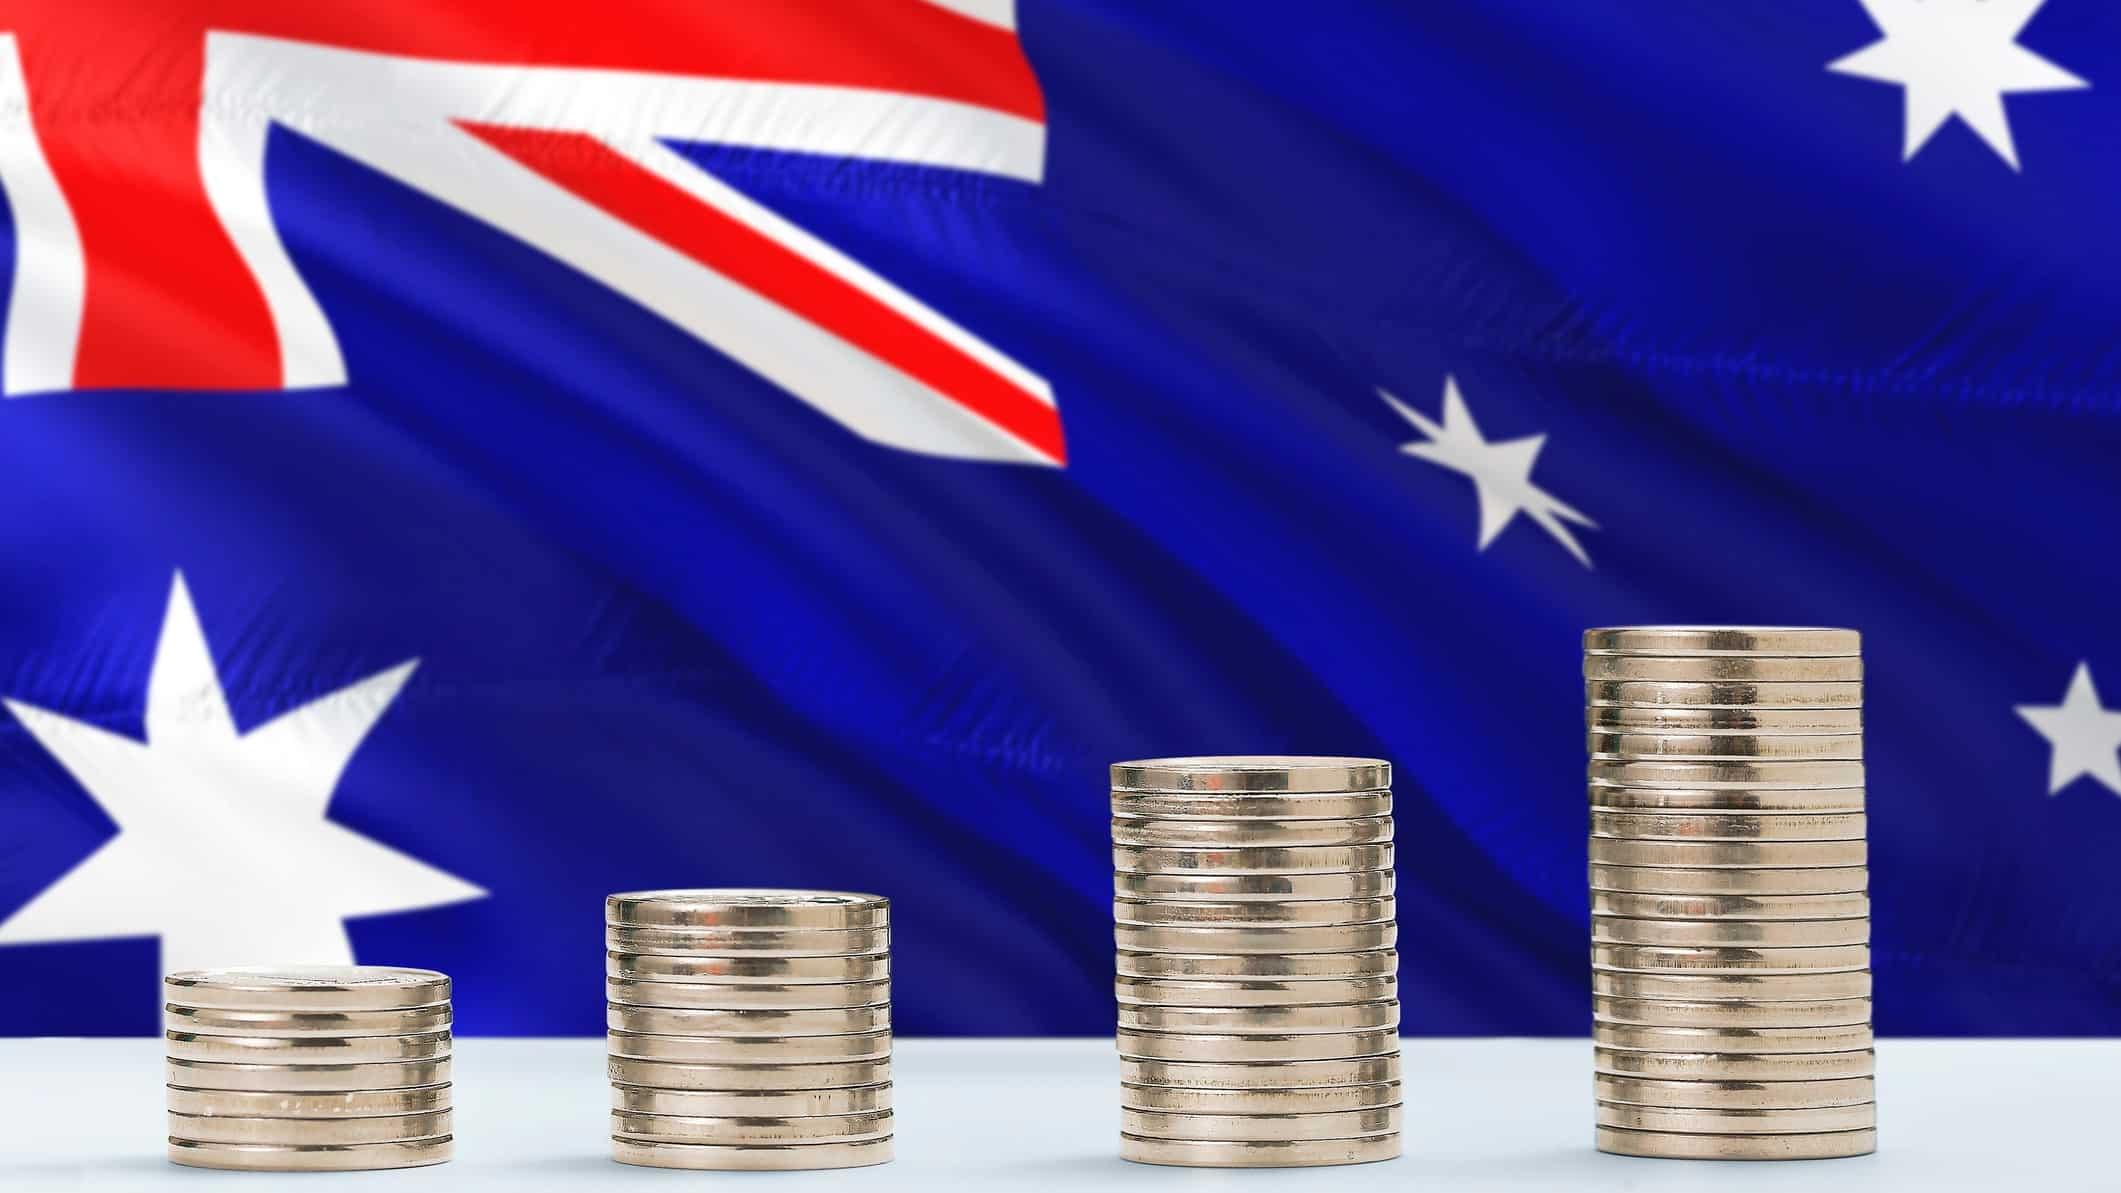 Rising asx share price represented by growing coin piles against australian flag